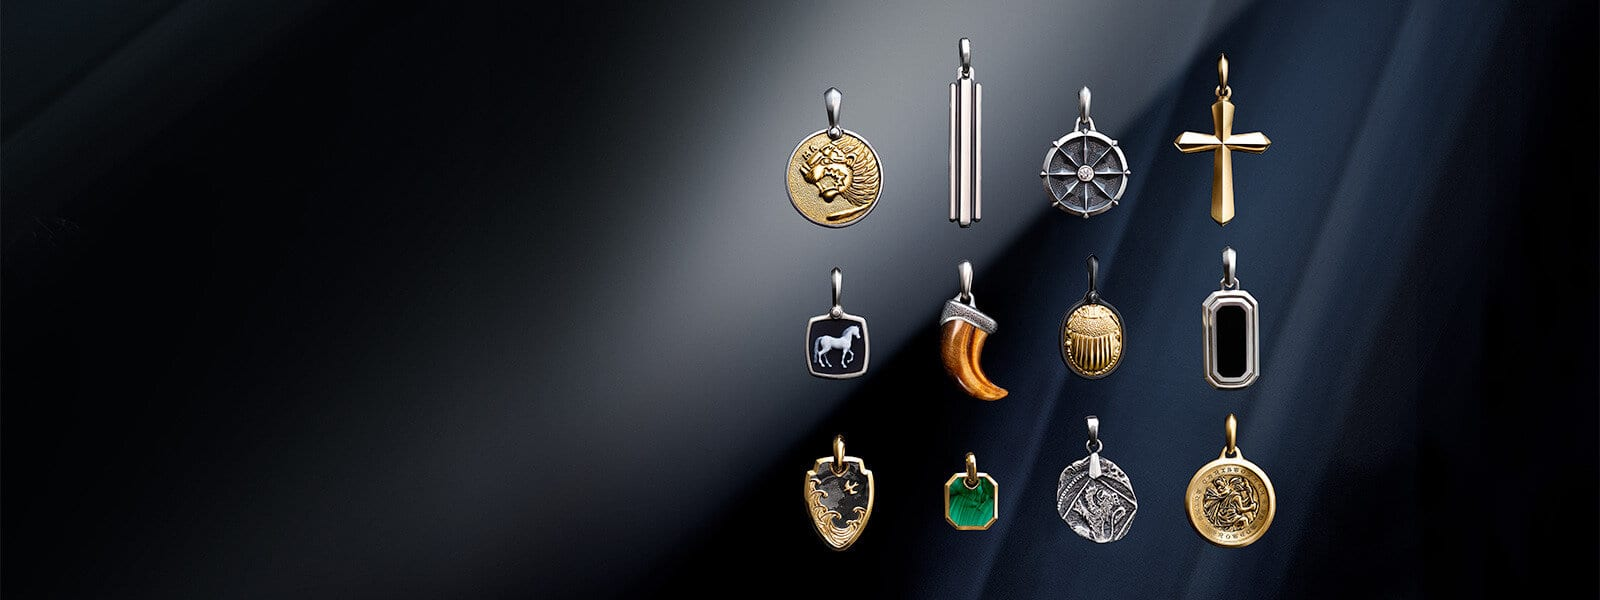 A color photograph shows a three-by-four grid of David Yurman men's amulets from the Petrvs®, Deco, Maritime®, Amulets, Roman, Waves and Shipwreck collections atop a reflective surface with angular, multi-colored reflections of light. The Petrvs® lion amulet is crafted from sterling silver with 18K yellow gold. One of the Deco amulets is crafted from sterling silver, while the other is crafted from sterling silver with black onyx. The Maritime® amulet is crafted from sterling silver with a white diamond center stone. The Petrvs® horse amulet is crafted from sterling silver with banded agate. The Amulets claw is crafted from tiger's eye with sterling silver. The Petrvs® scarab amulet is crafted from black titanium with 18K yellow gold. The Waves shield amulet is crafted from 18K yellow gold with forged carbon. One of the Roman amulets is crafted from 18K yellow gold with malachite, while the other is a cross crafted from 18K yellow gold. The Shipwreck coin amulet is crafted from sterling silver. The St. Christopher amulet is crafted from 18K yellow gold.